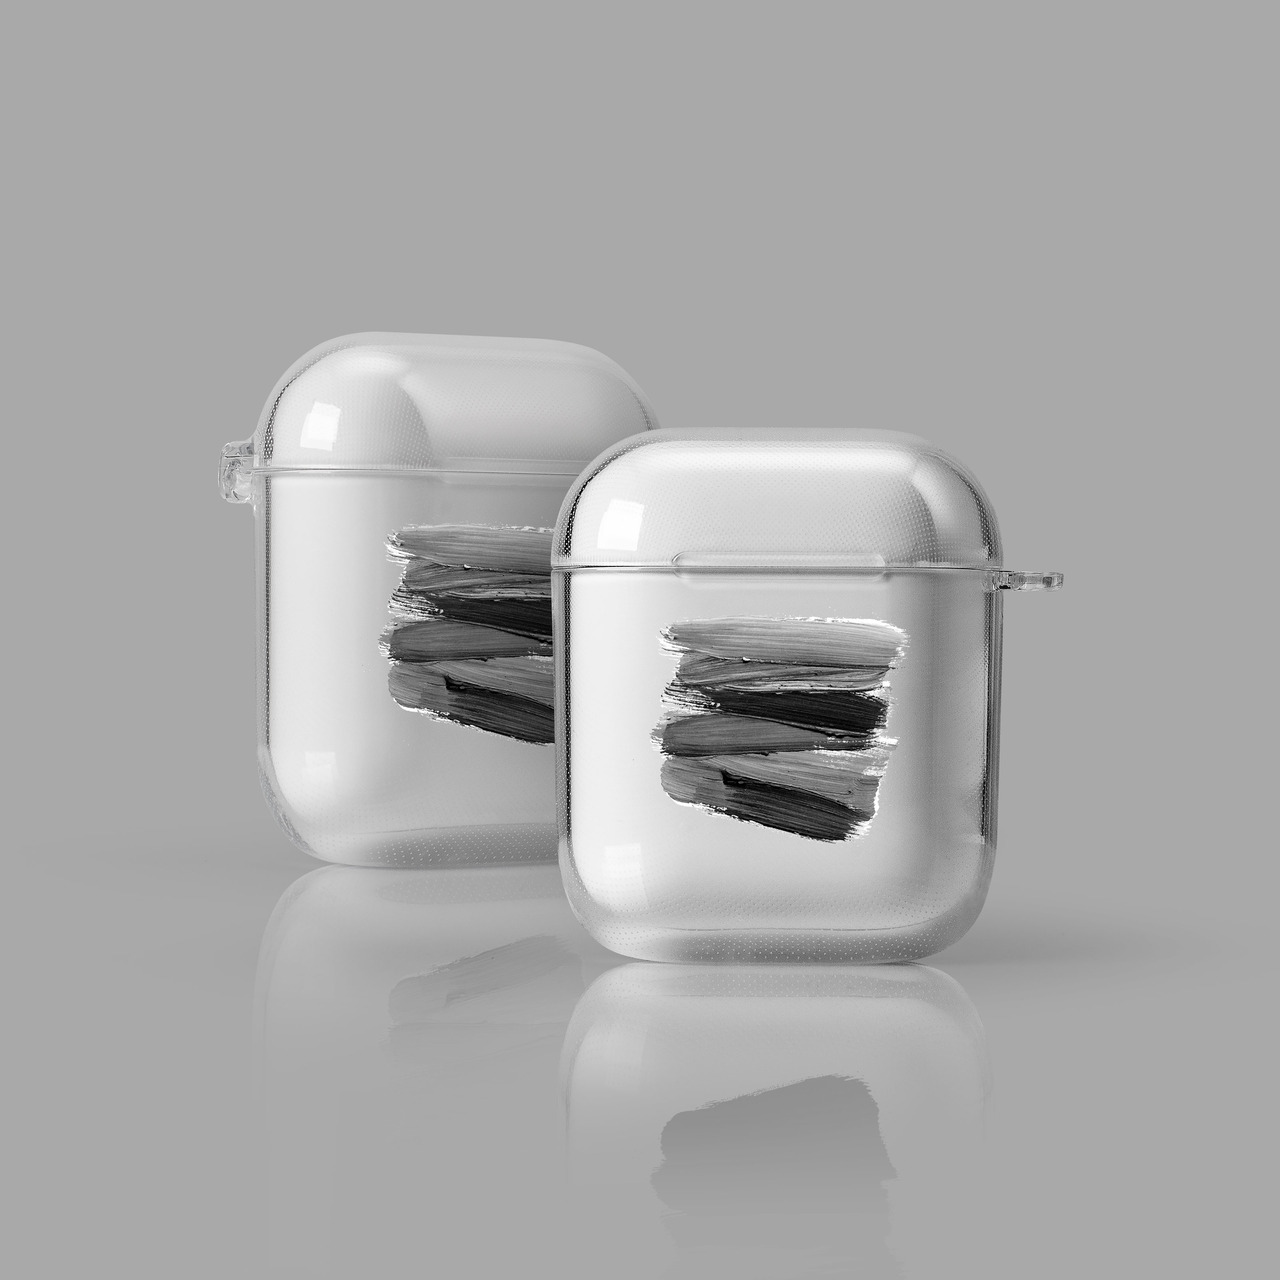 [Airpods cases] Touchable Concrete No.08